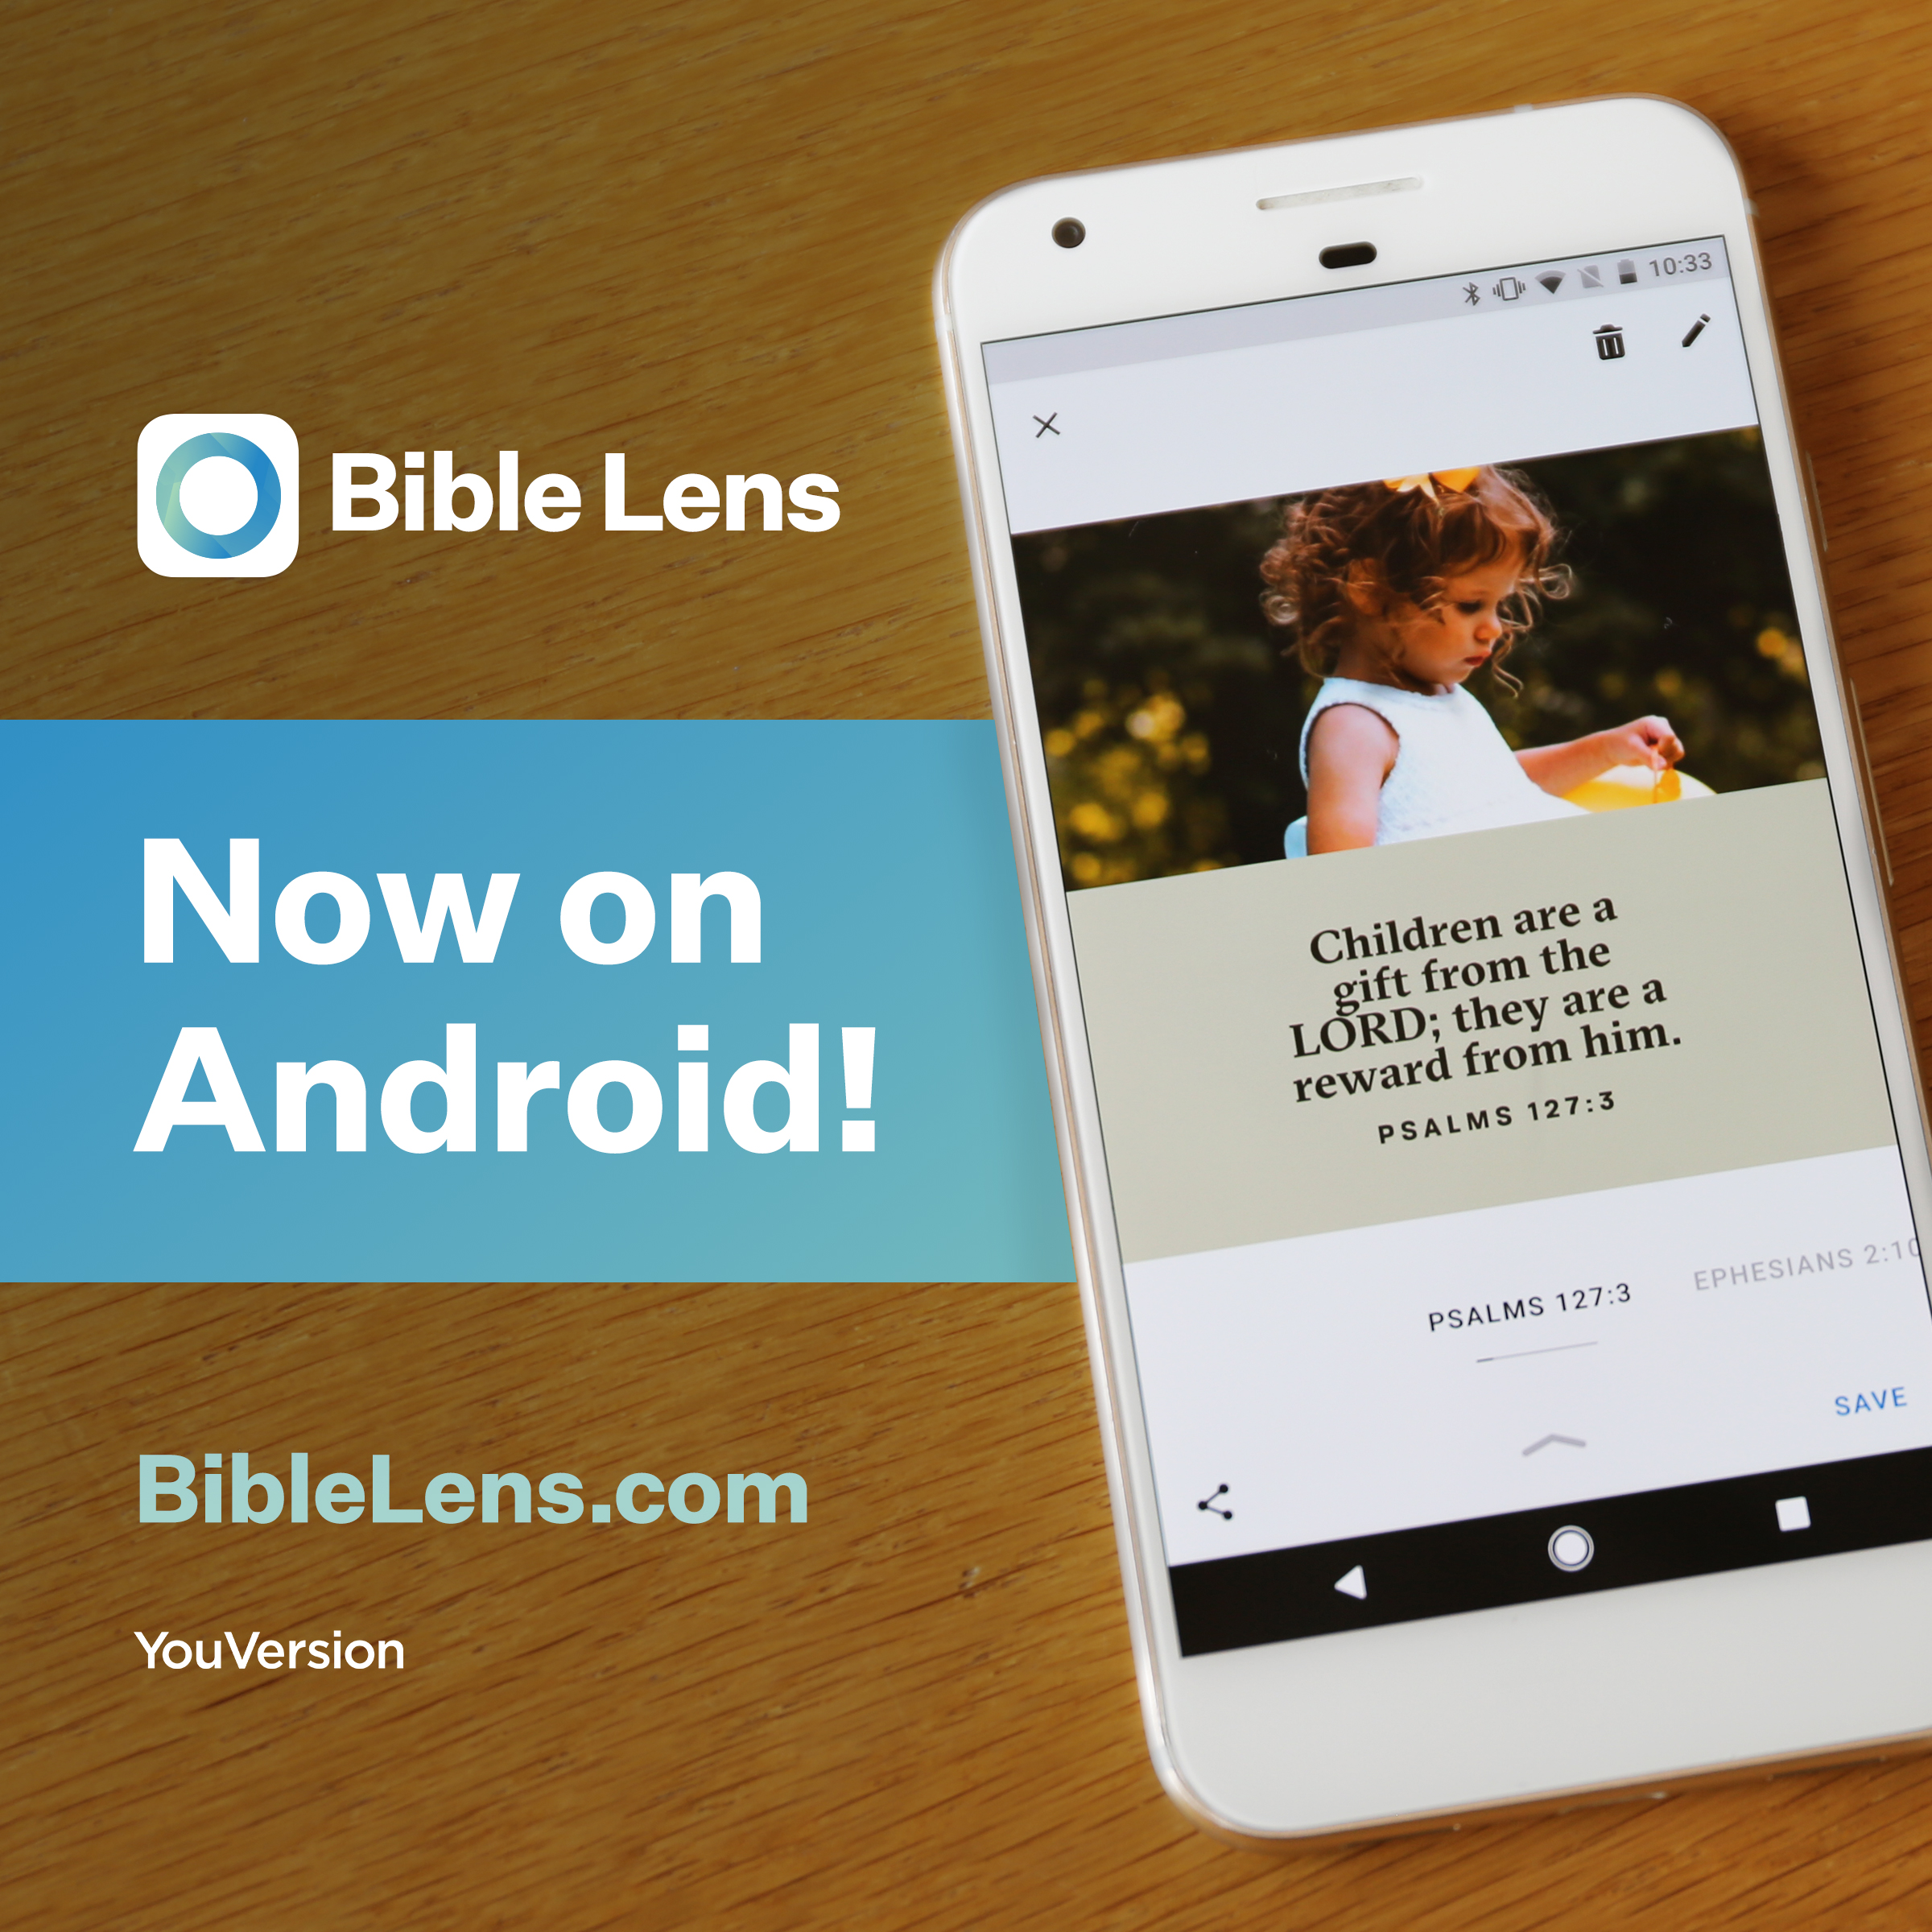 Bible Lens - Now on Android